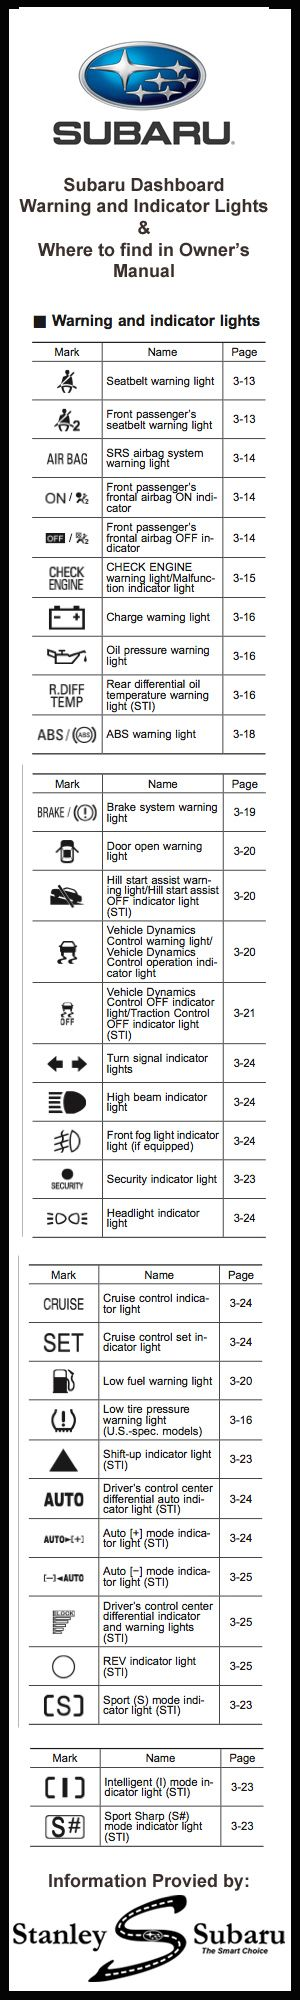 Subaru Dashboard Warning Lights Explained | YOUCANIC